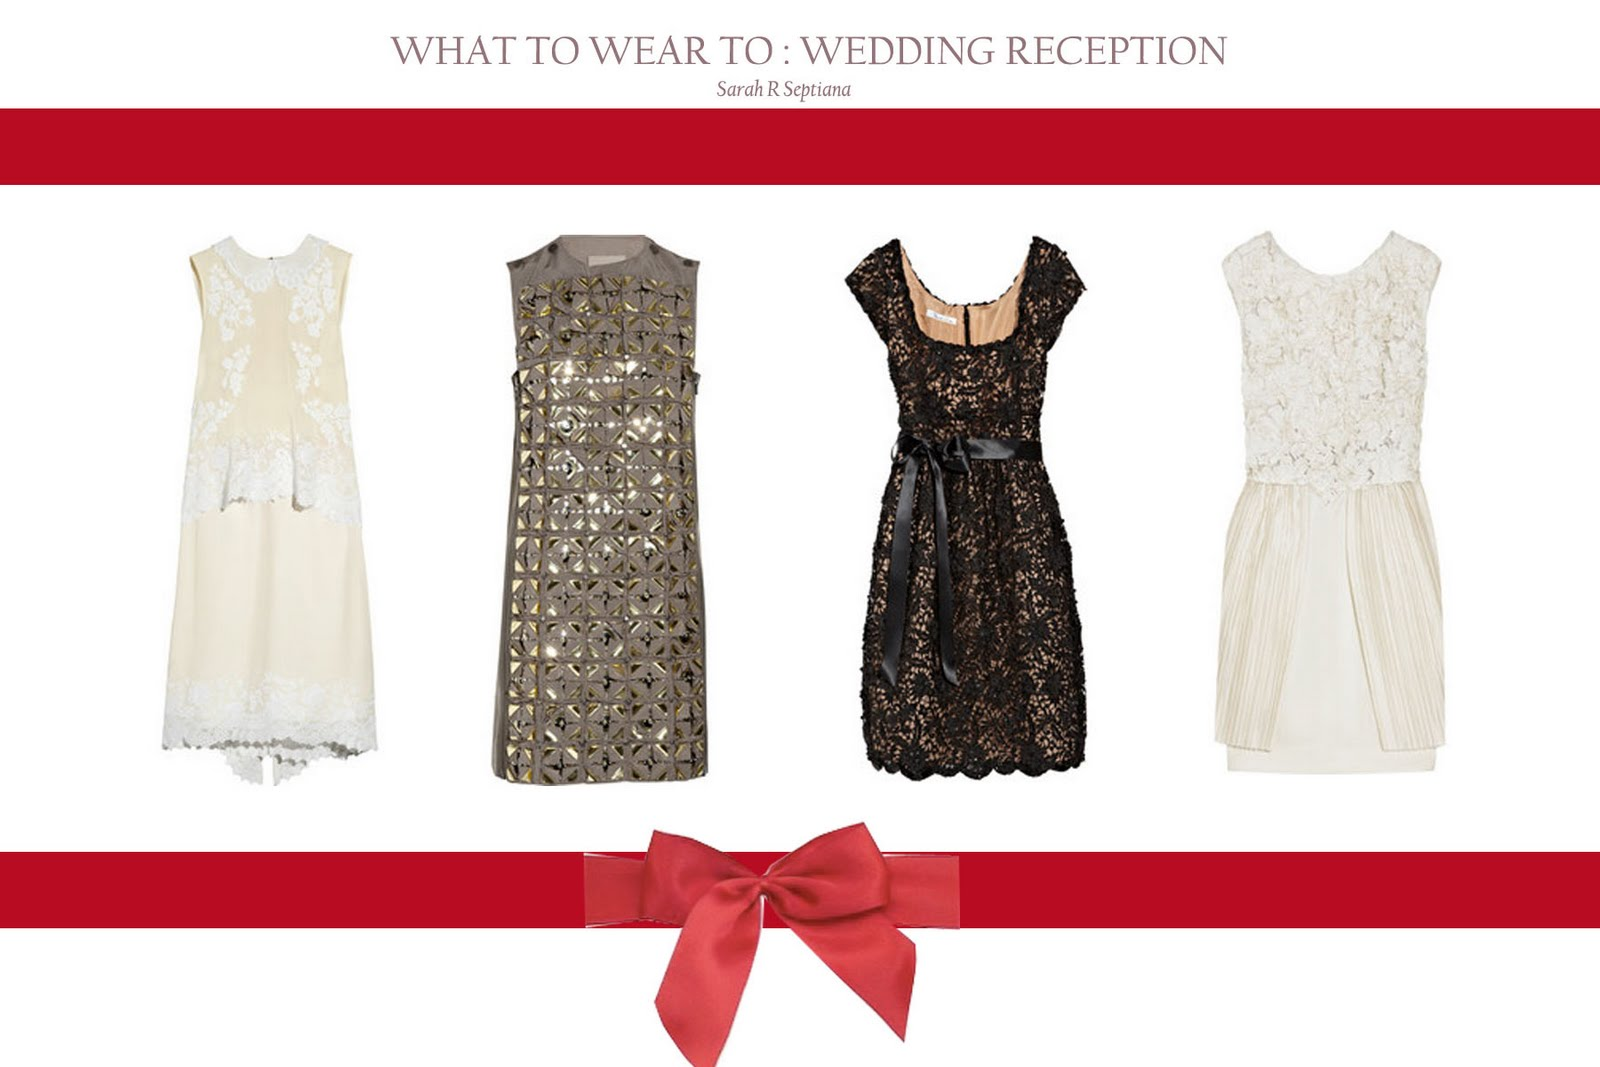 What To Wear To Wedding Reception